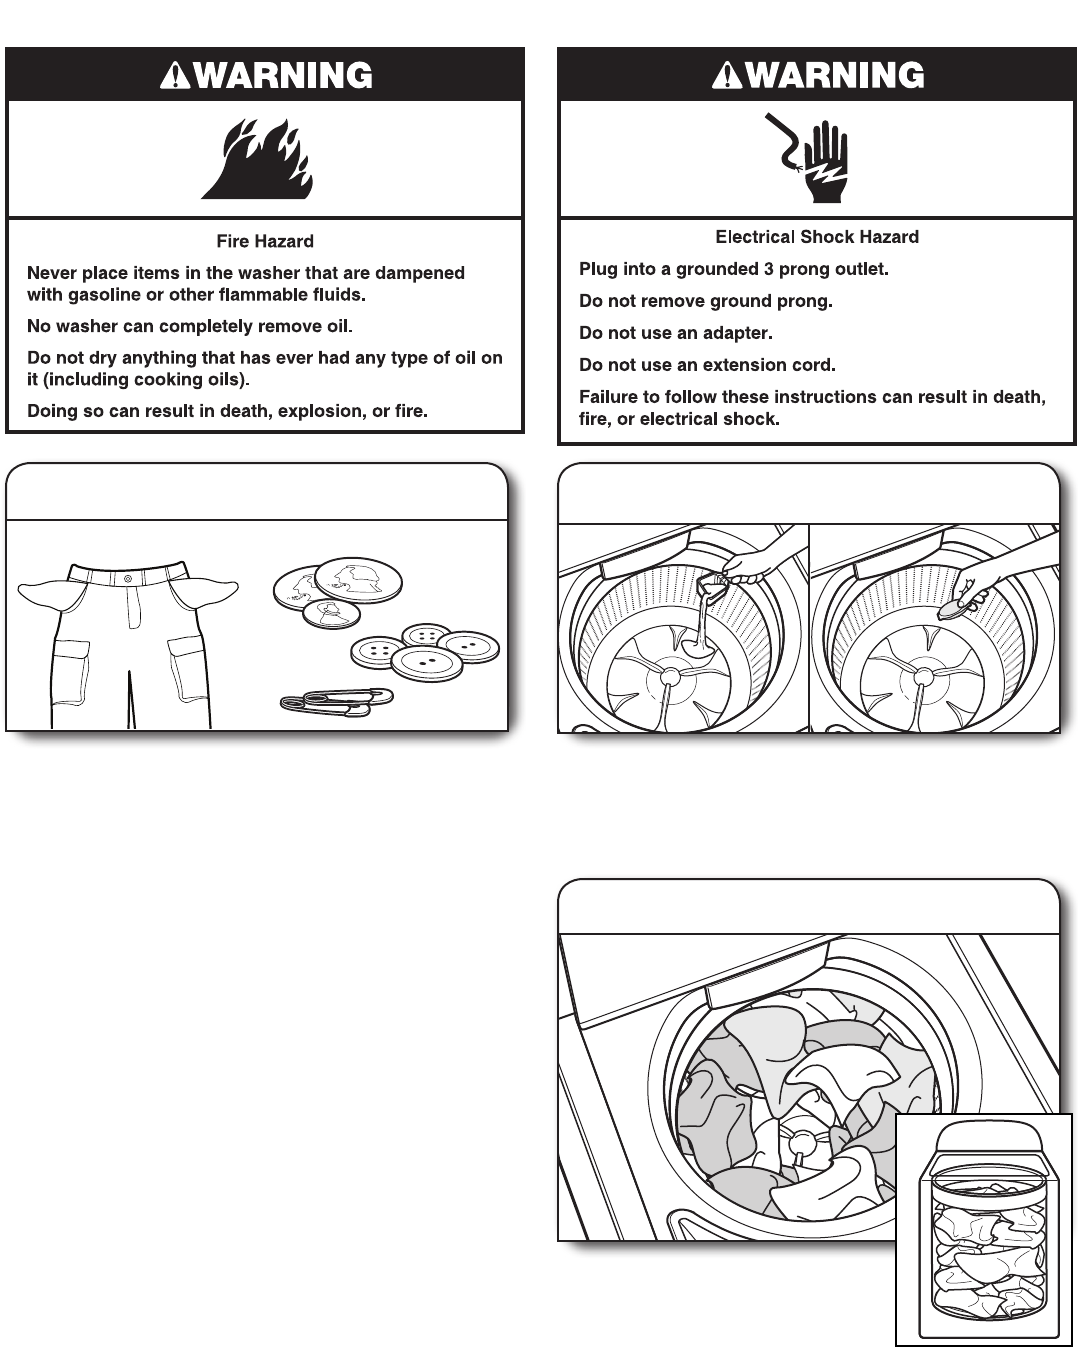 Page 8 of Whirlpool Washer Cabrio User Guide